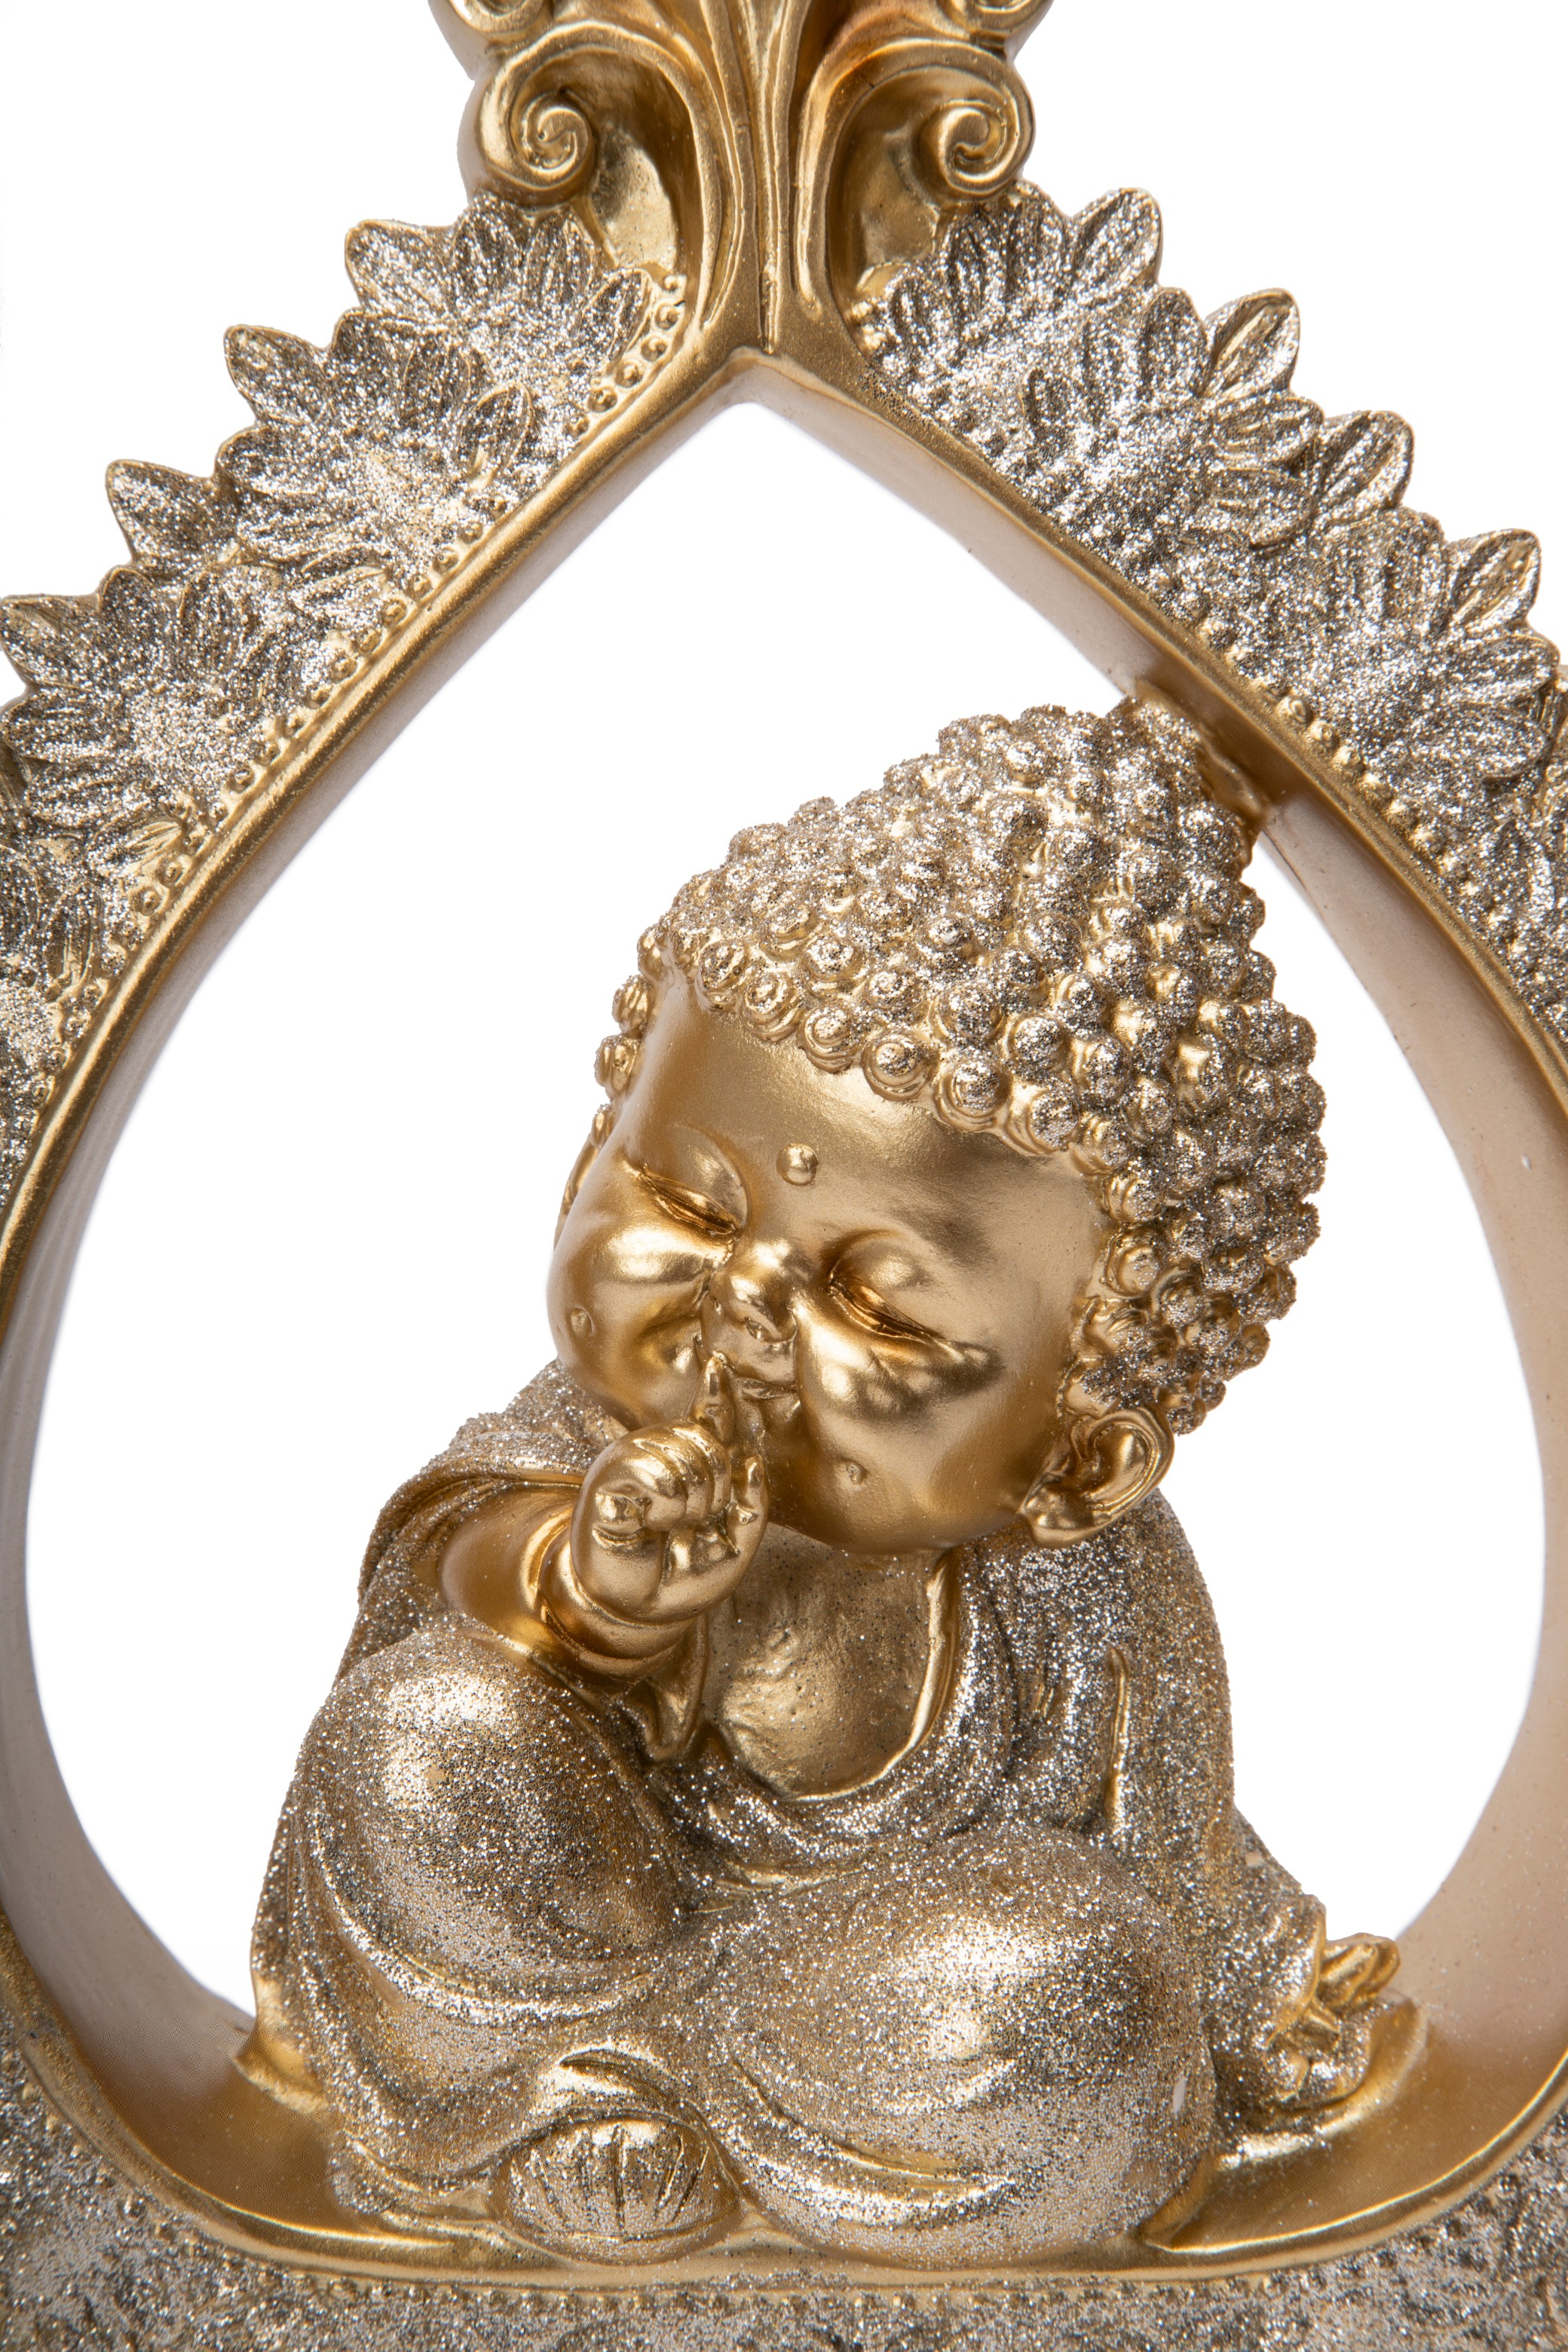 FIO QUIET MONK IN PEACE FLAME GOLD Figurines in Gold Colour by Living Essence